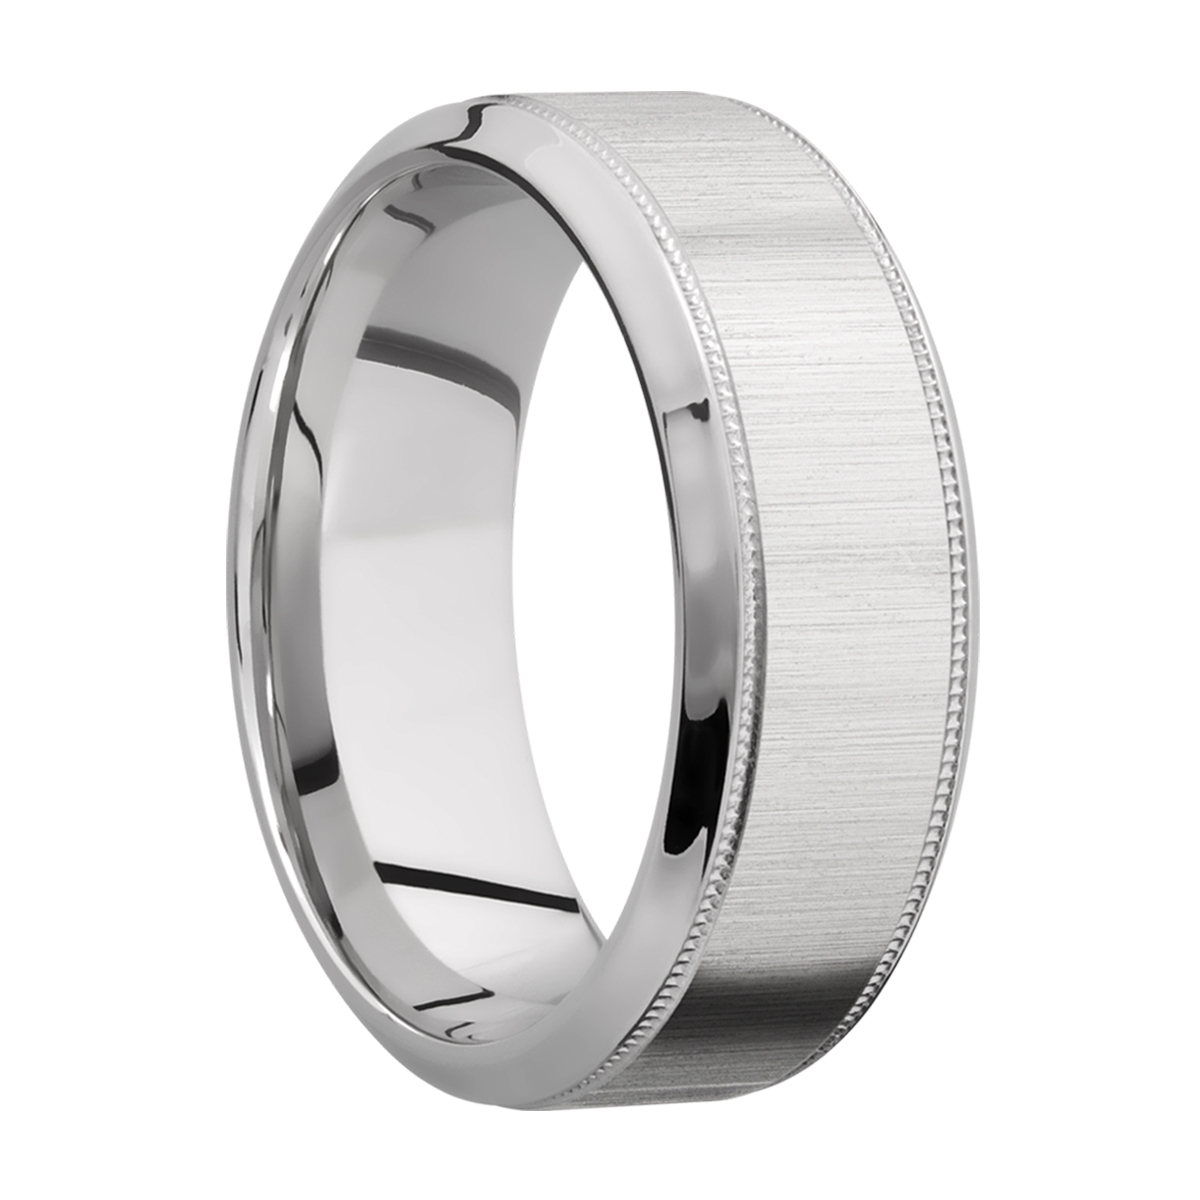 Lashbrook 8HB2UMIL Titanium Wedding Ring or Band Alternative View 1